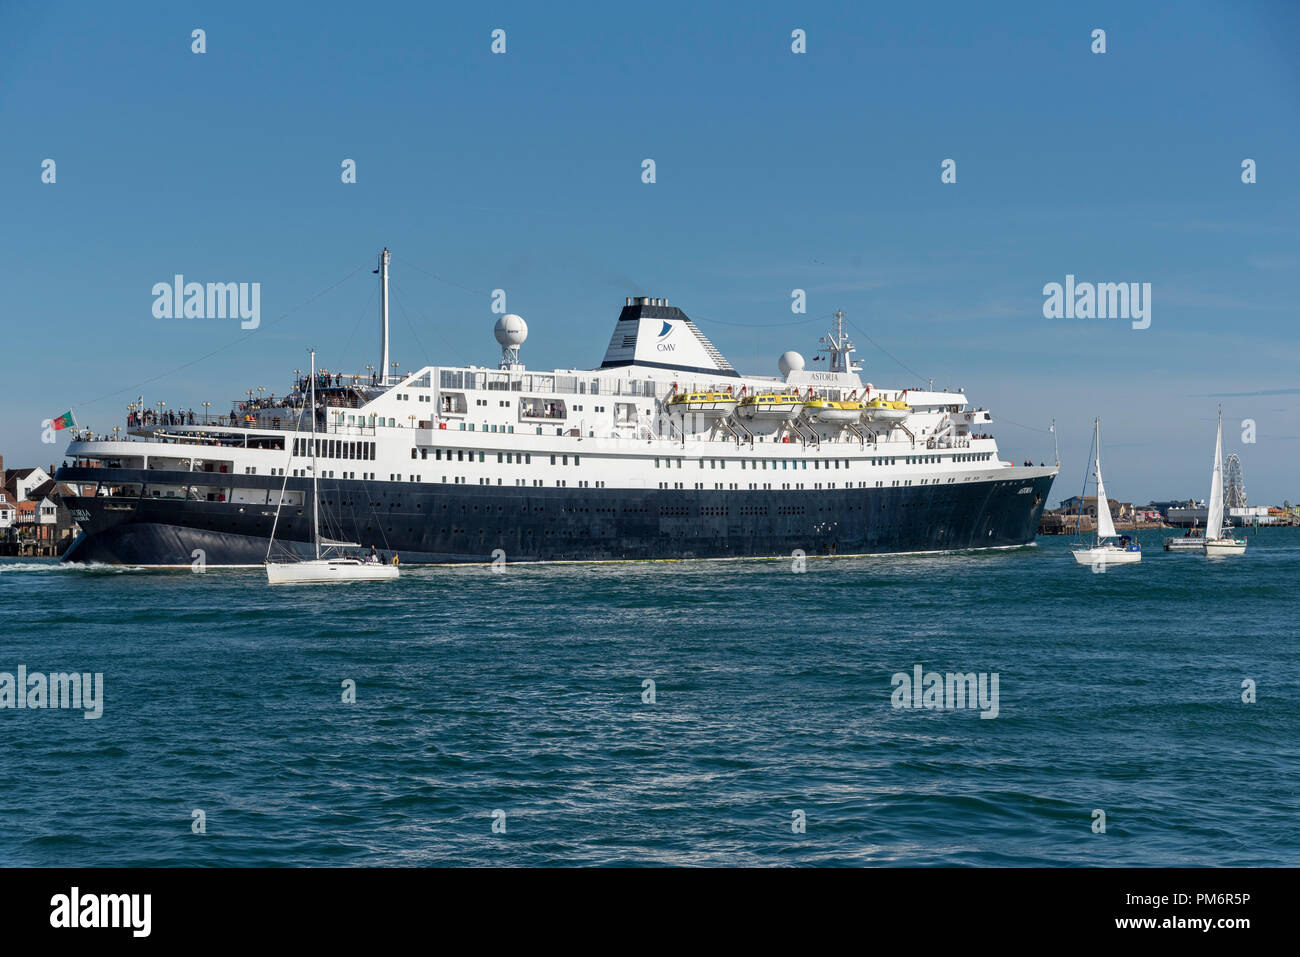 MV Astoria departing Portsmouth Harbour, England UK. She came into service in 1946 and is the second oldest cruise ship in service. - Stock Image